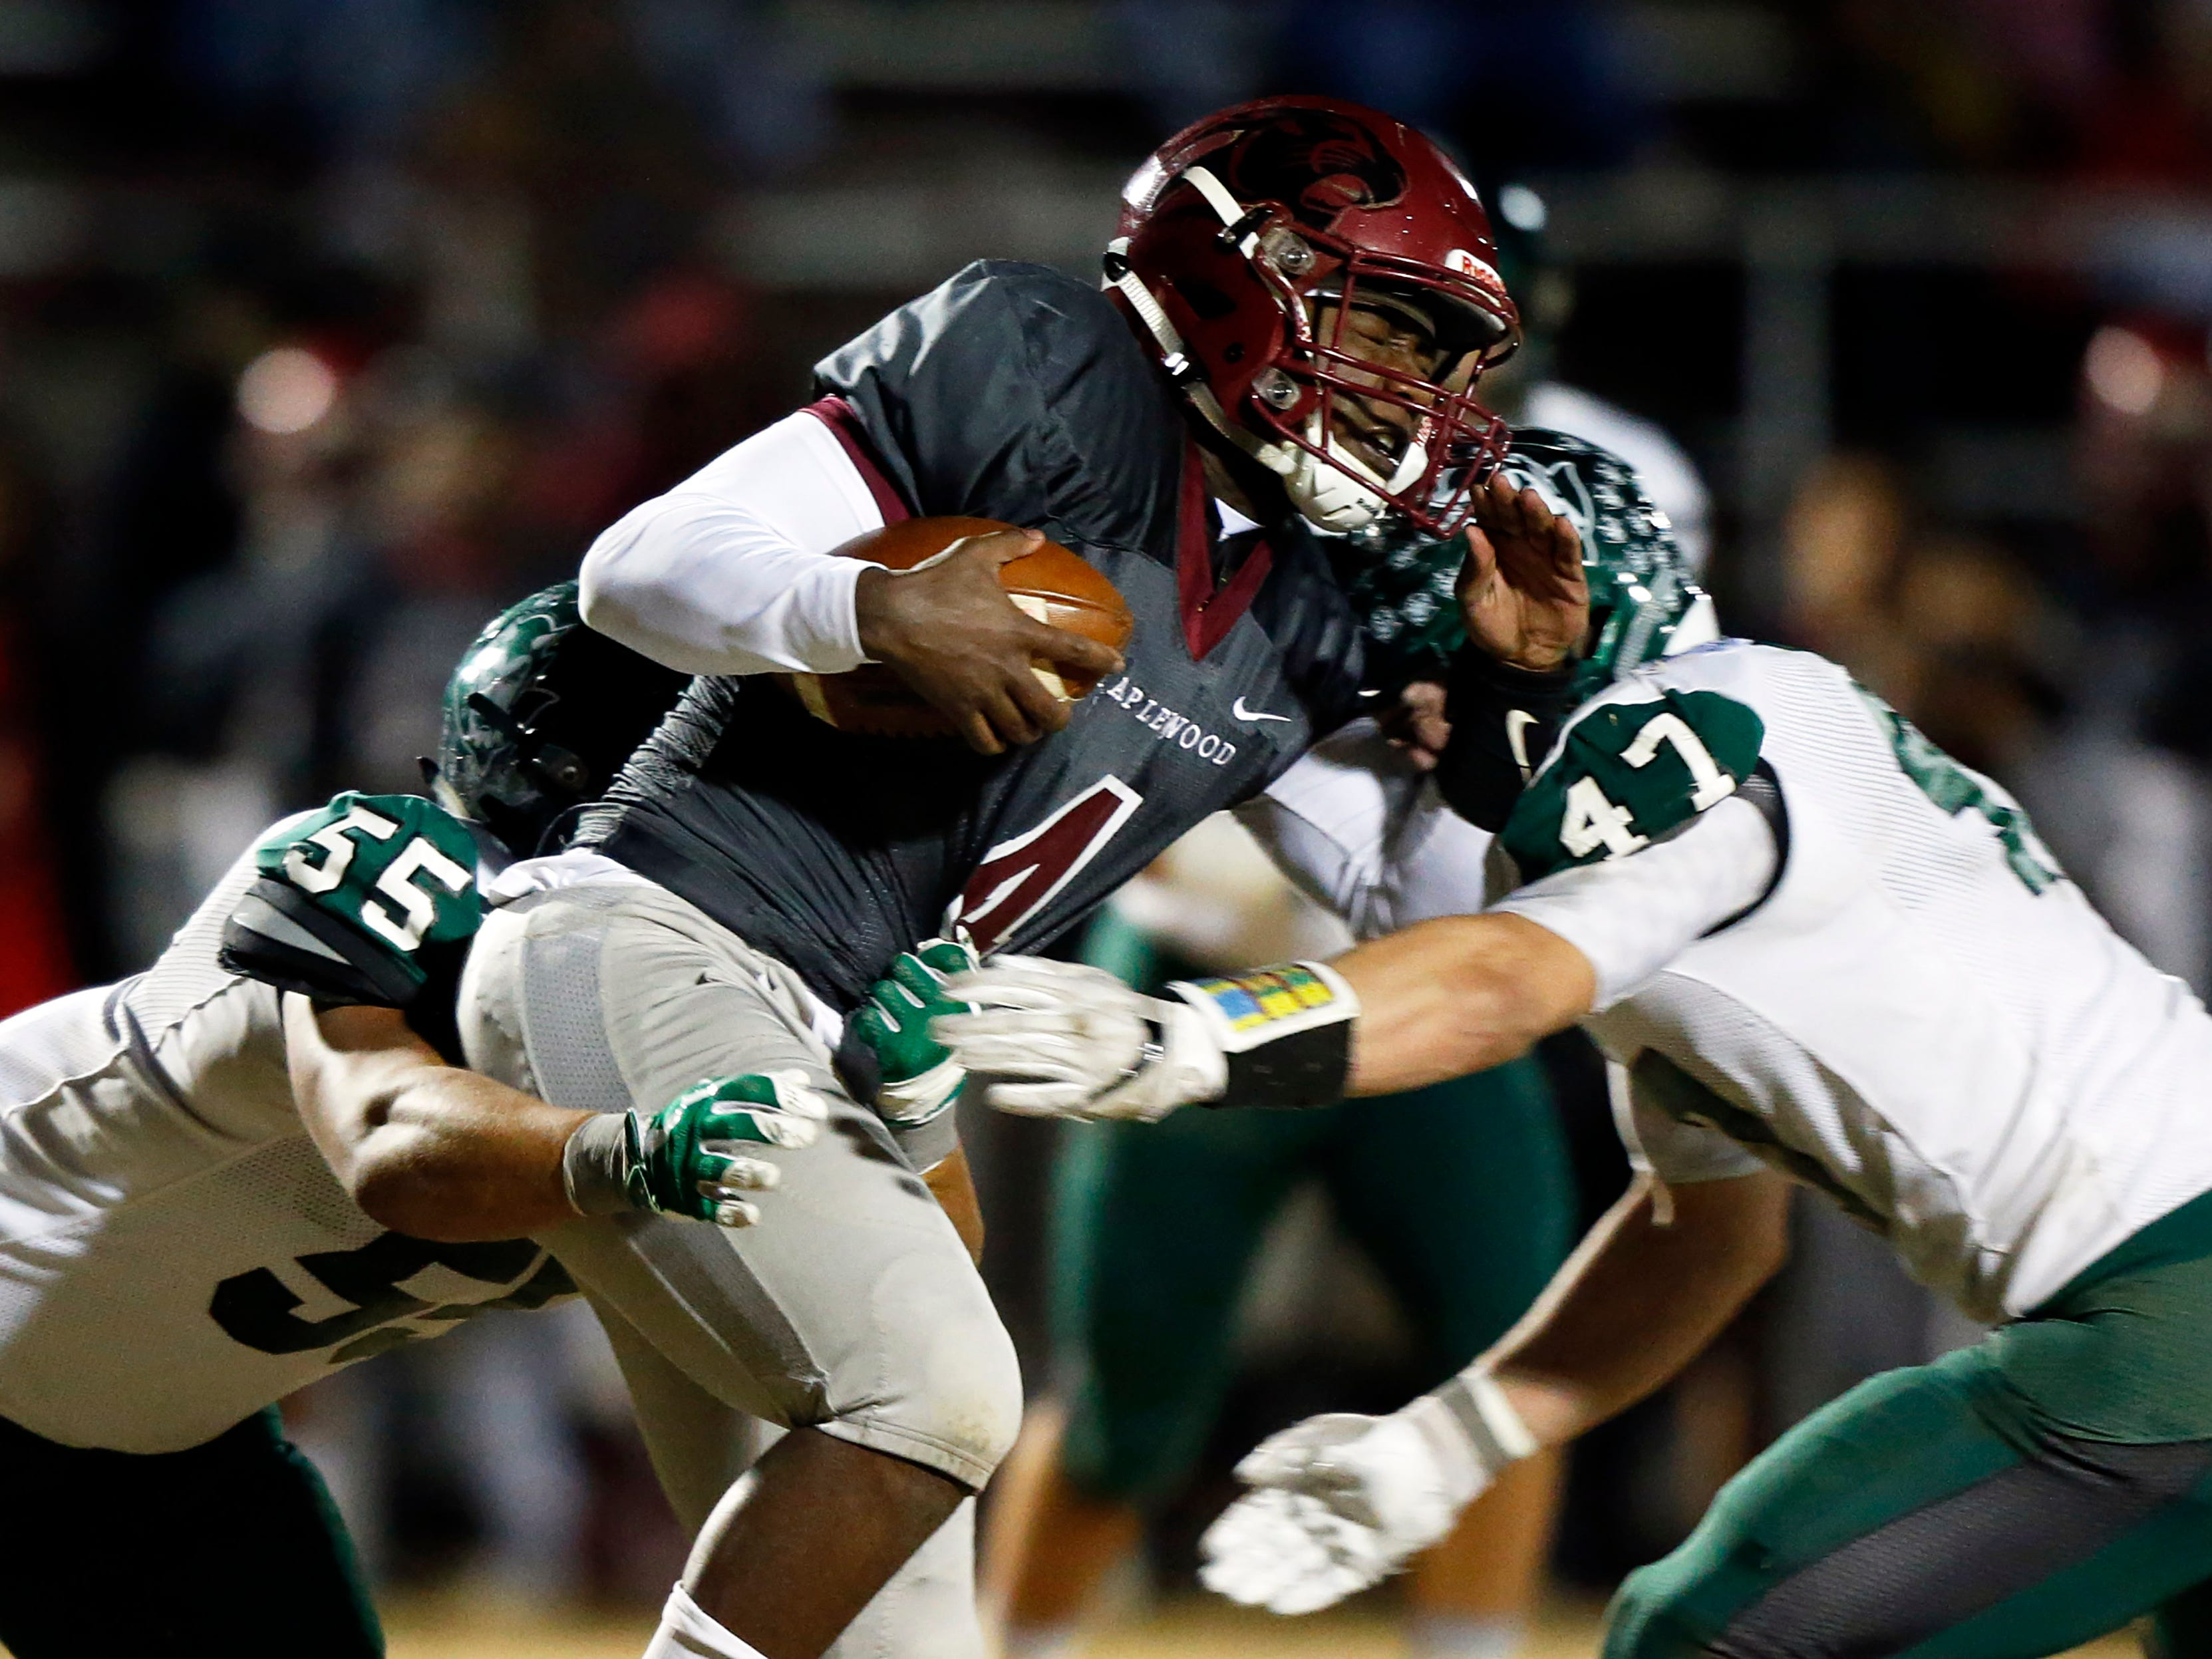 Maplewood's Bobo Hodges is tackled by Greeneville's Ty Youngblood (47) and 	Logan Shipley during their game Friday, Nov. 23, 2018, in Nashville, TN.